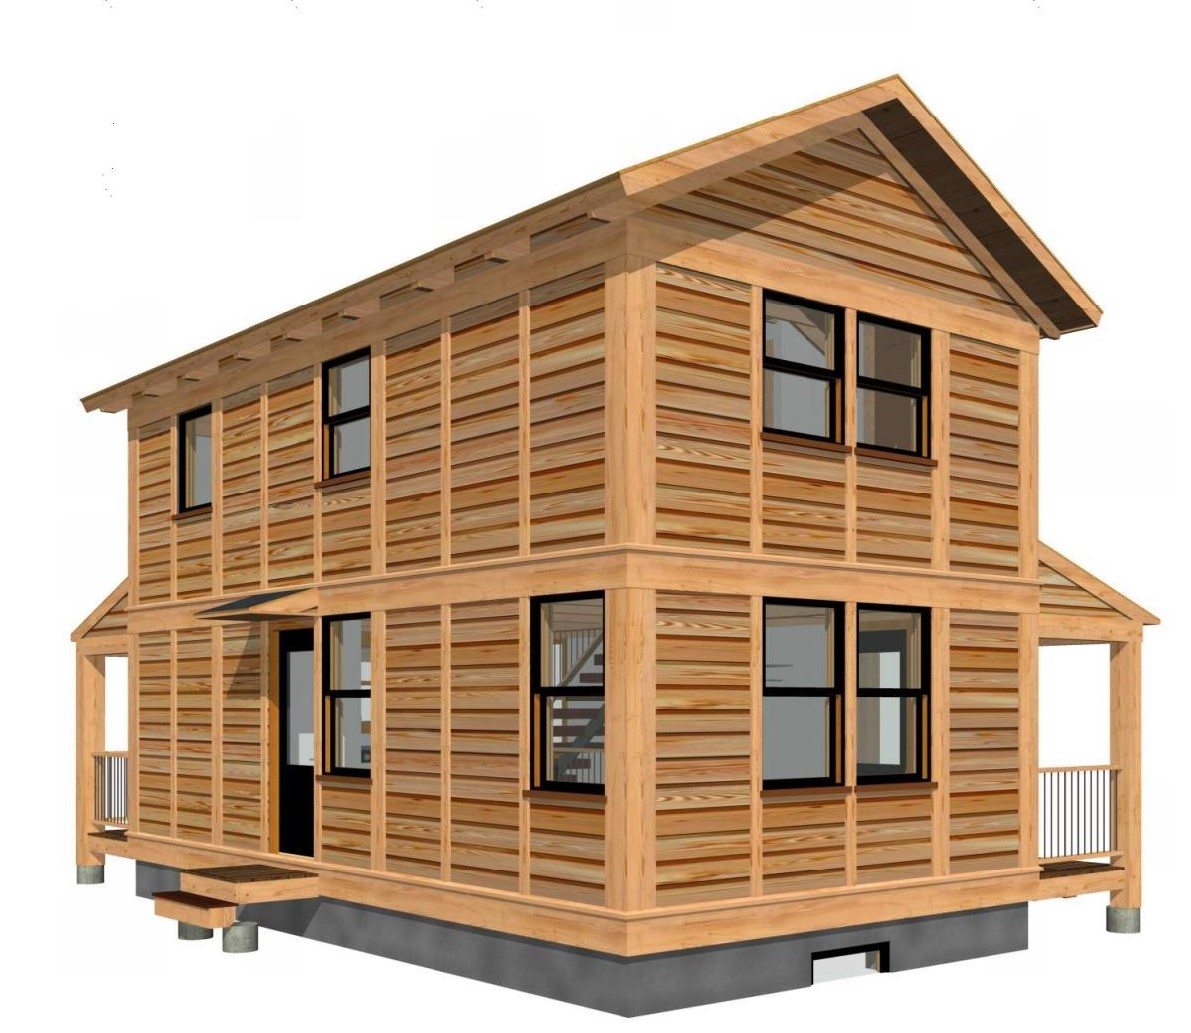 Tiny Timber 2-844-2-1 - BSMT - RIGHT - ILLUSTRATIVE 2019.05.07 Page 009.jpg